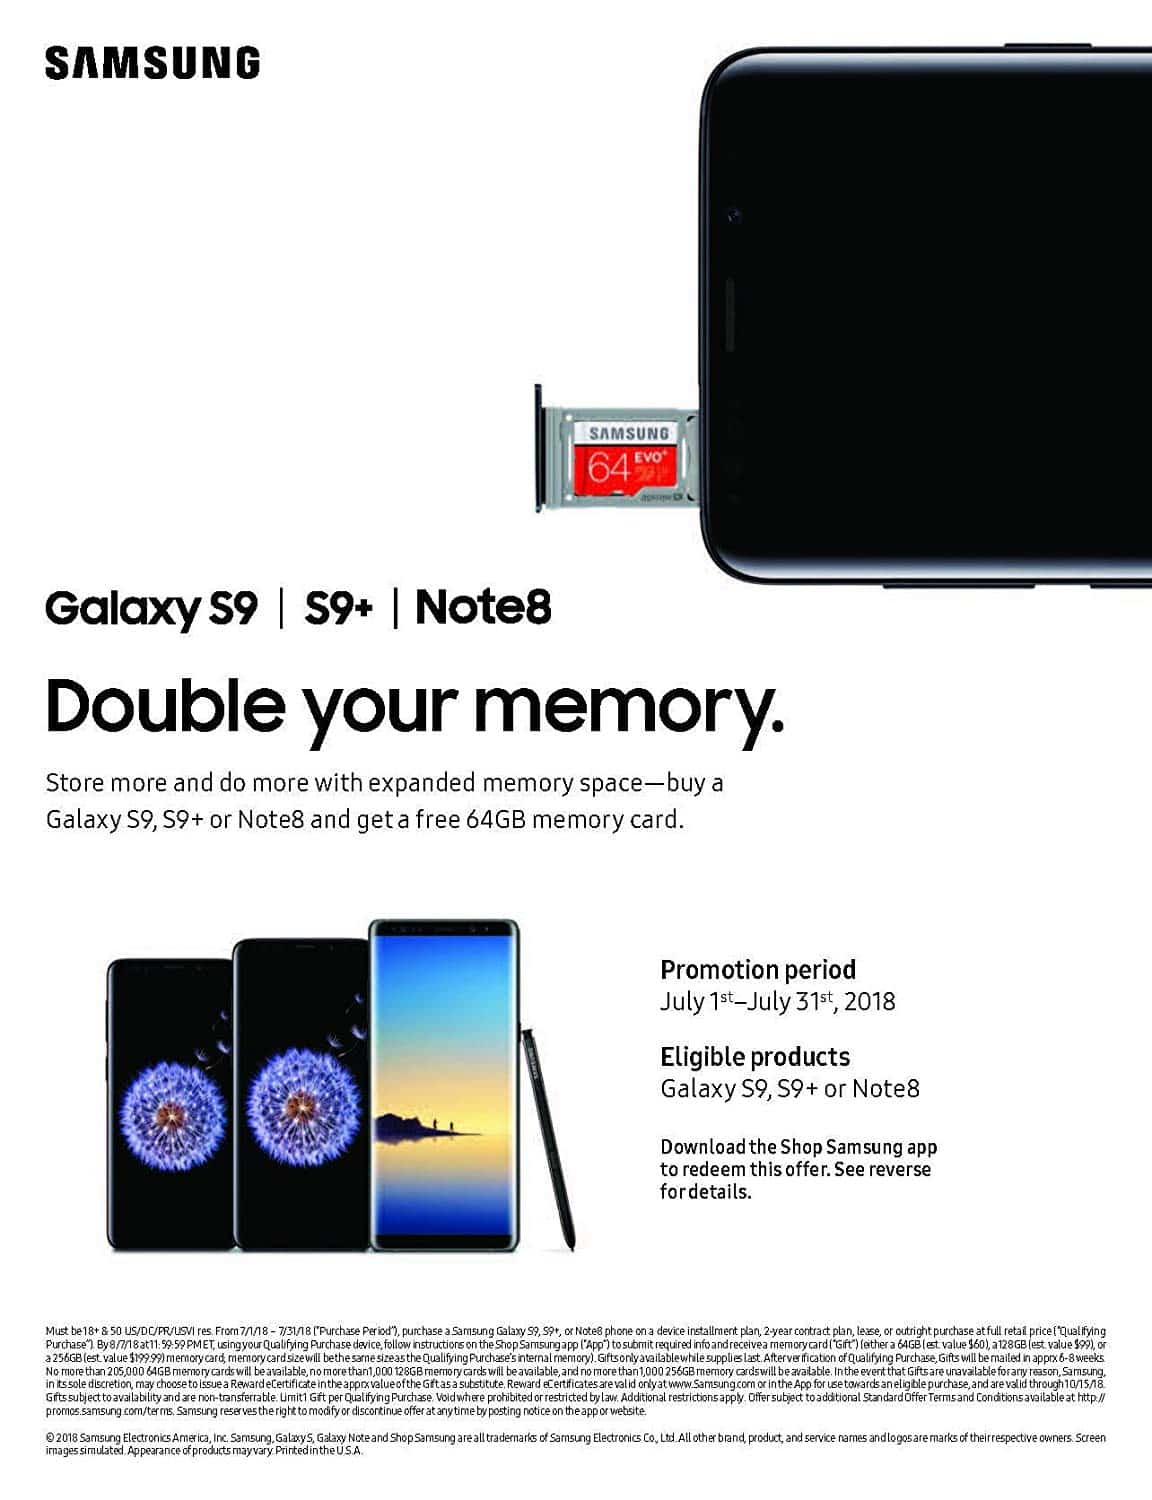 Double Your Samsung Galaxy S9's Memory